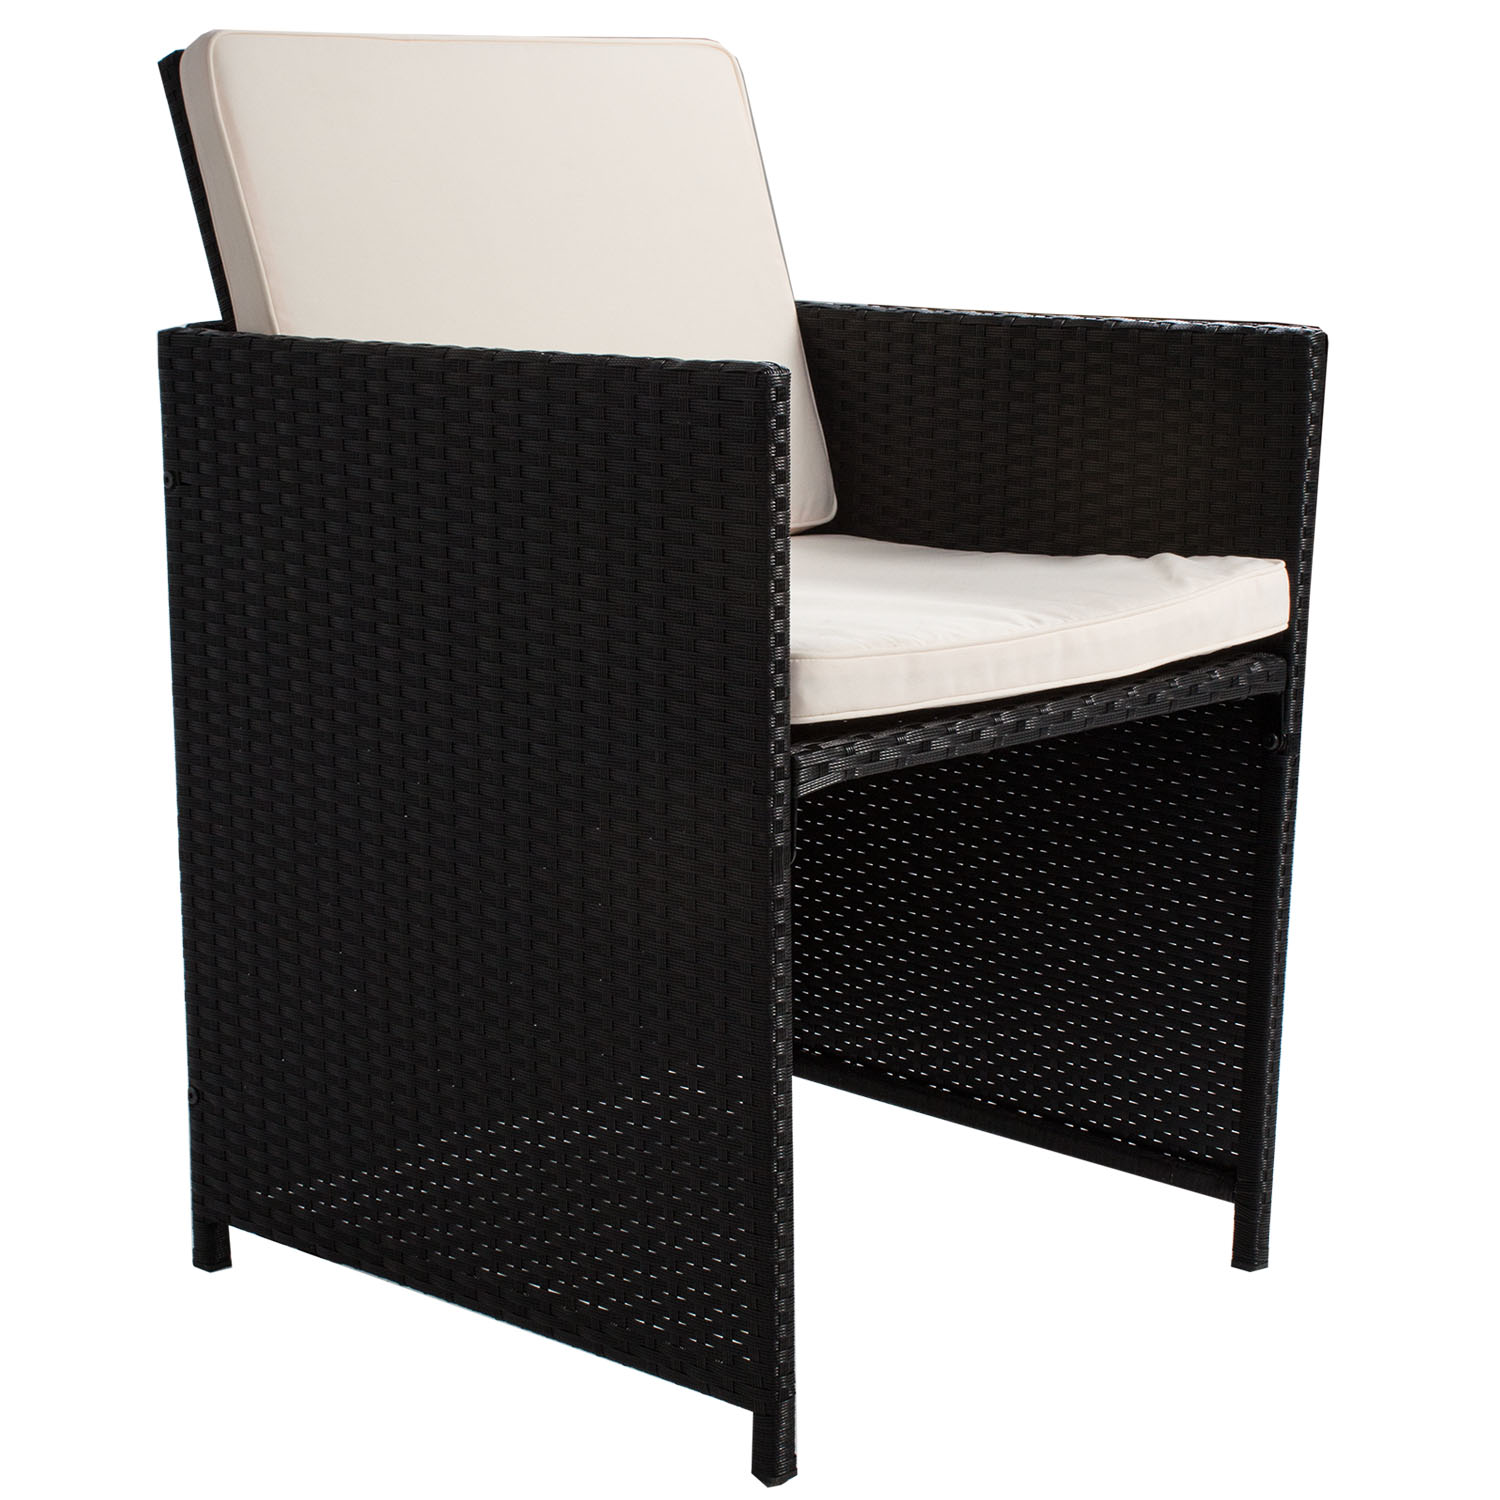 polyrattan gartenm bel cube essgruppe sitzgruppe rattan gartenset lounge neu ebay. Black Bedroom Furniture Sets. Home Design Ideas